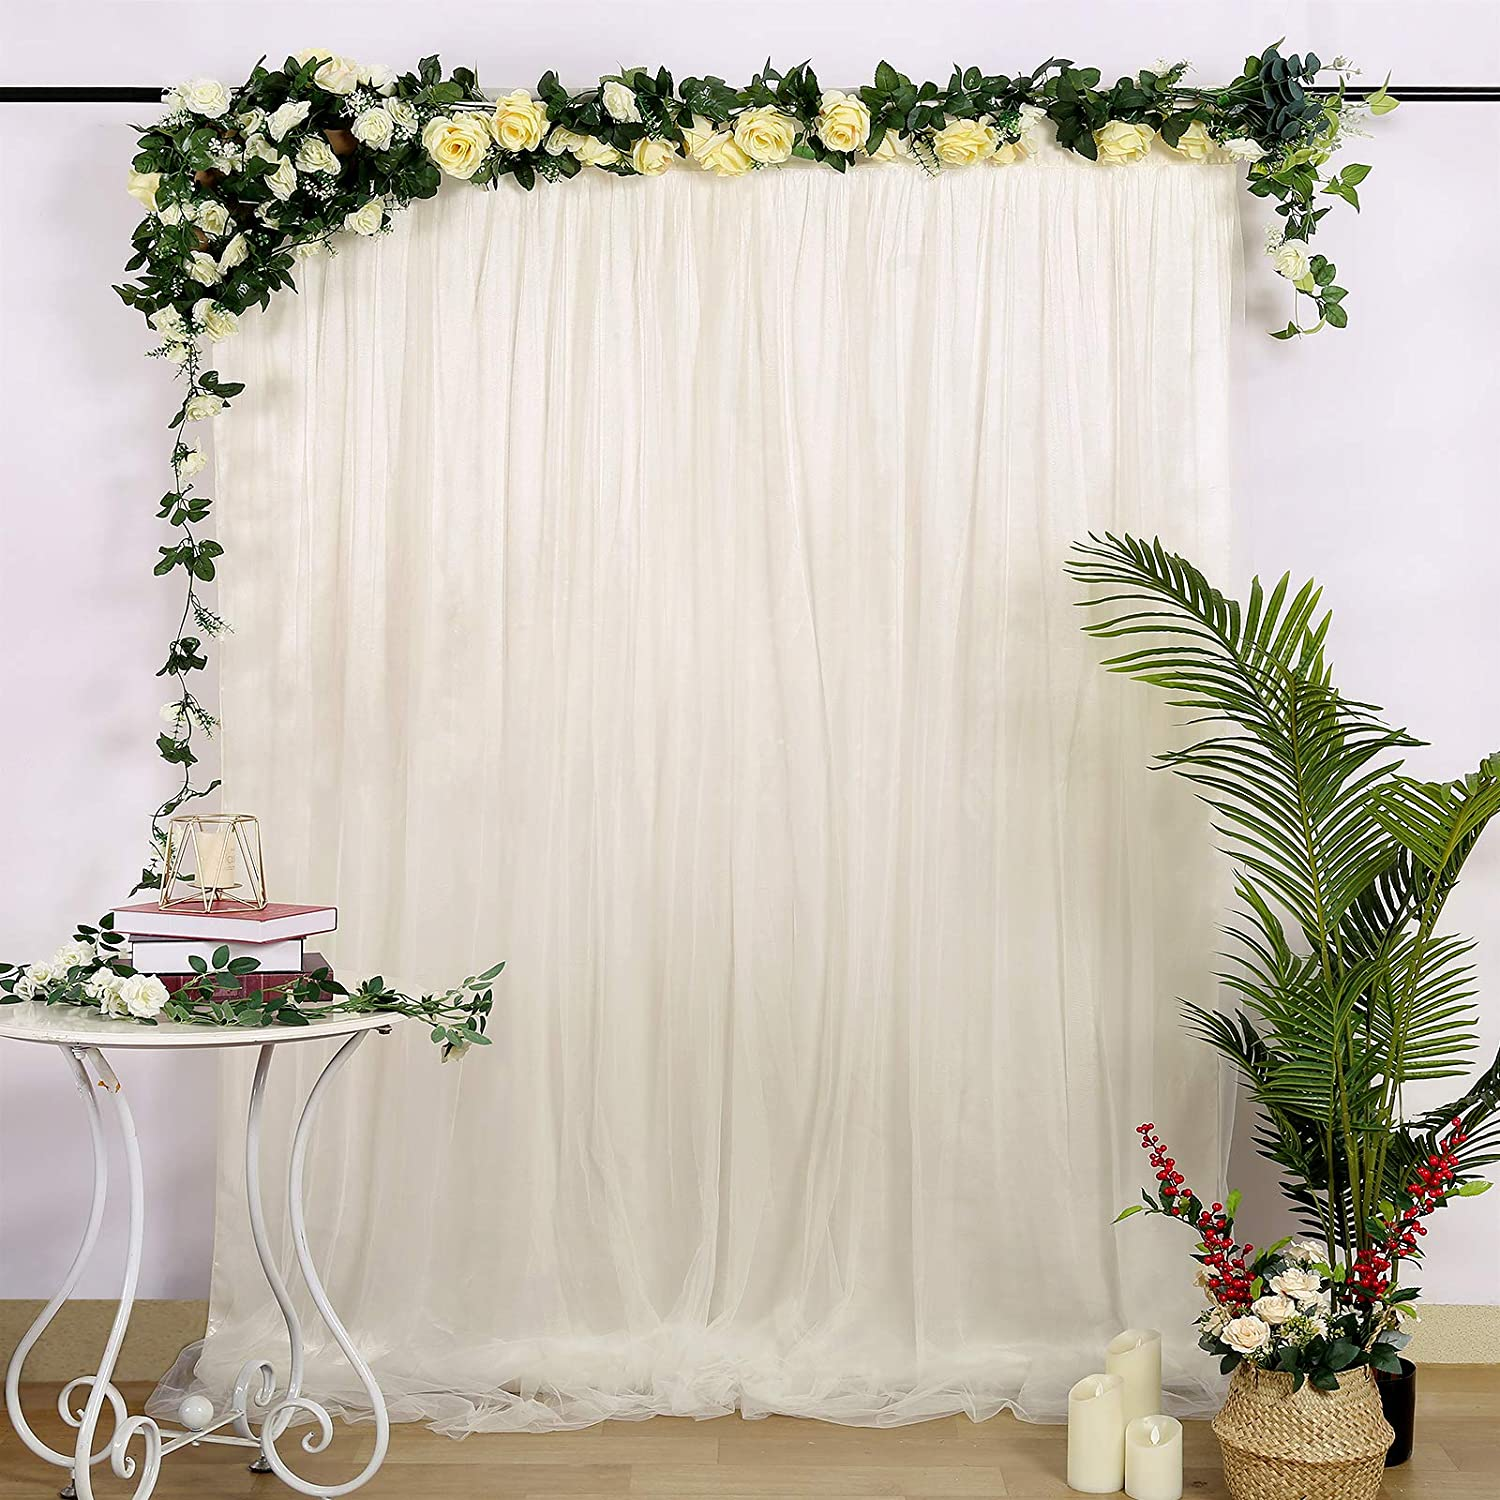 White Backdrop Curtain for Parties Weddings Baby Shower Birthday Photography Bridal Shower Drape Photoshoot Backdrop Curtains with Tiebacks 5ft x 7ft,2 Panels